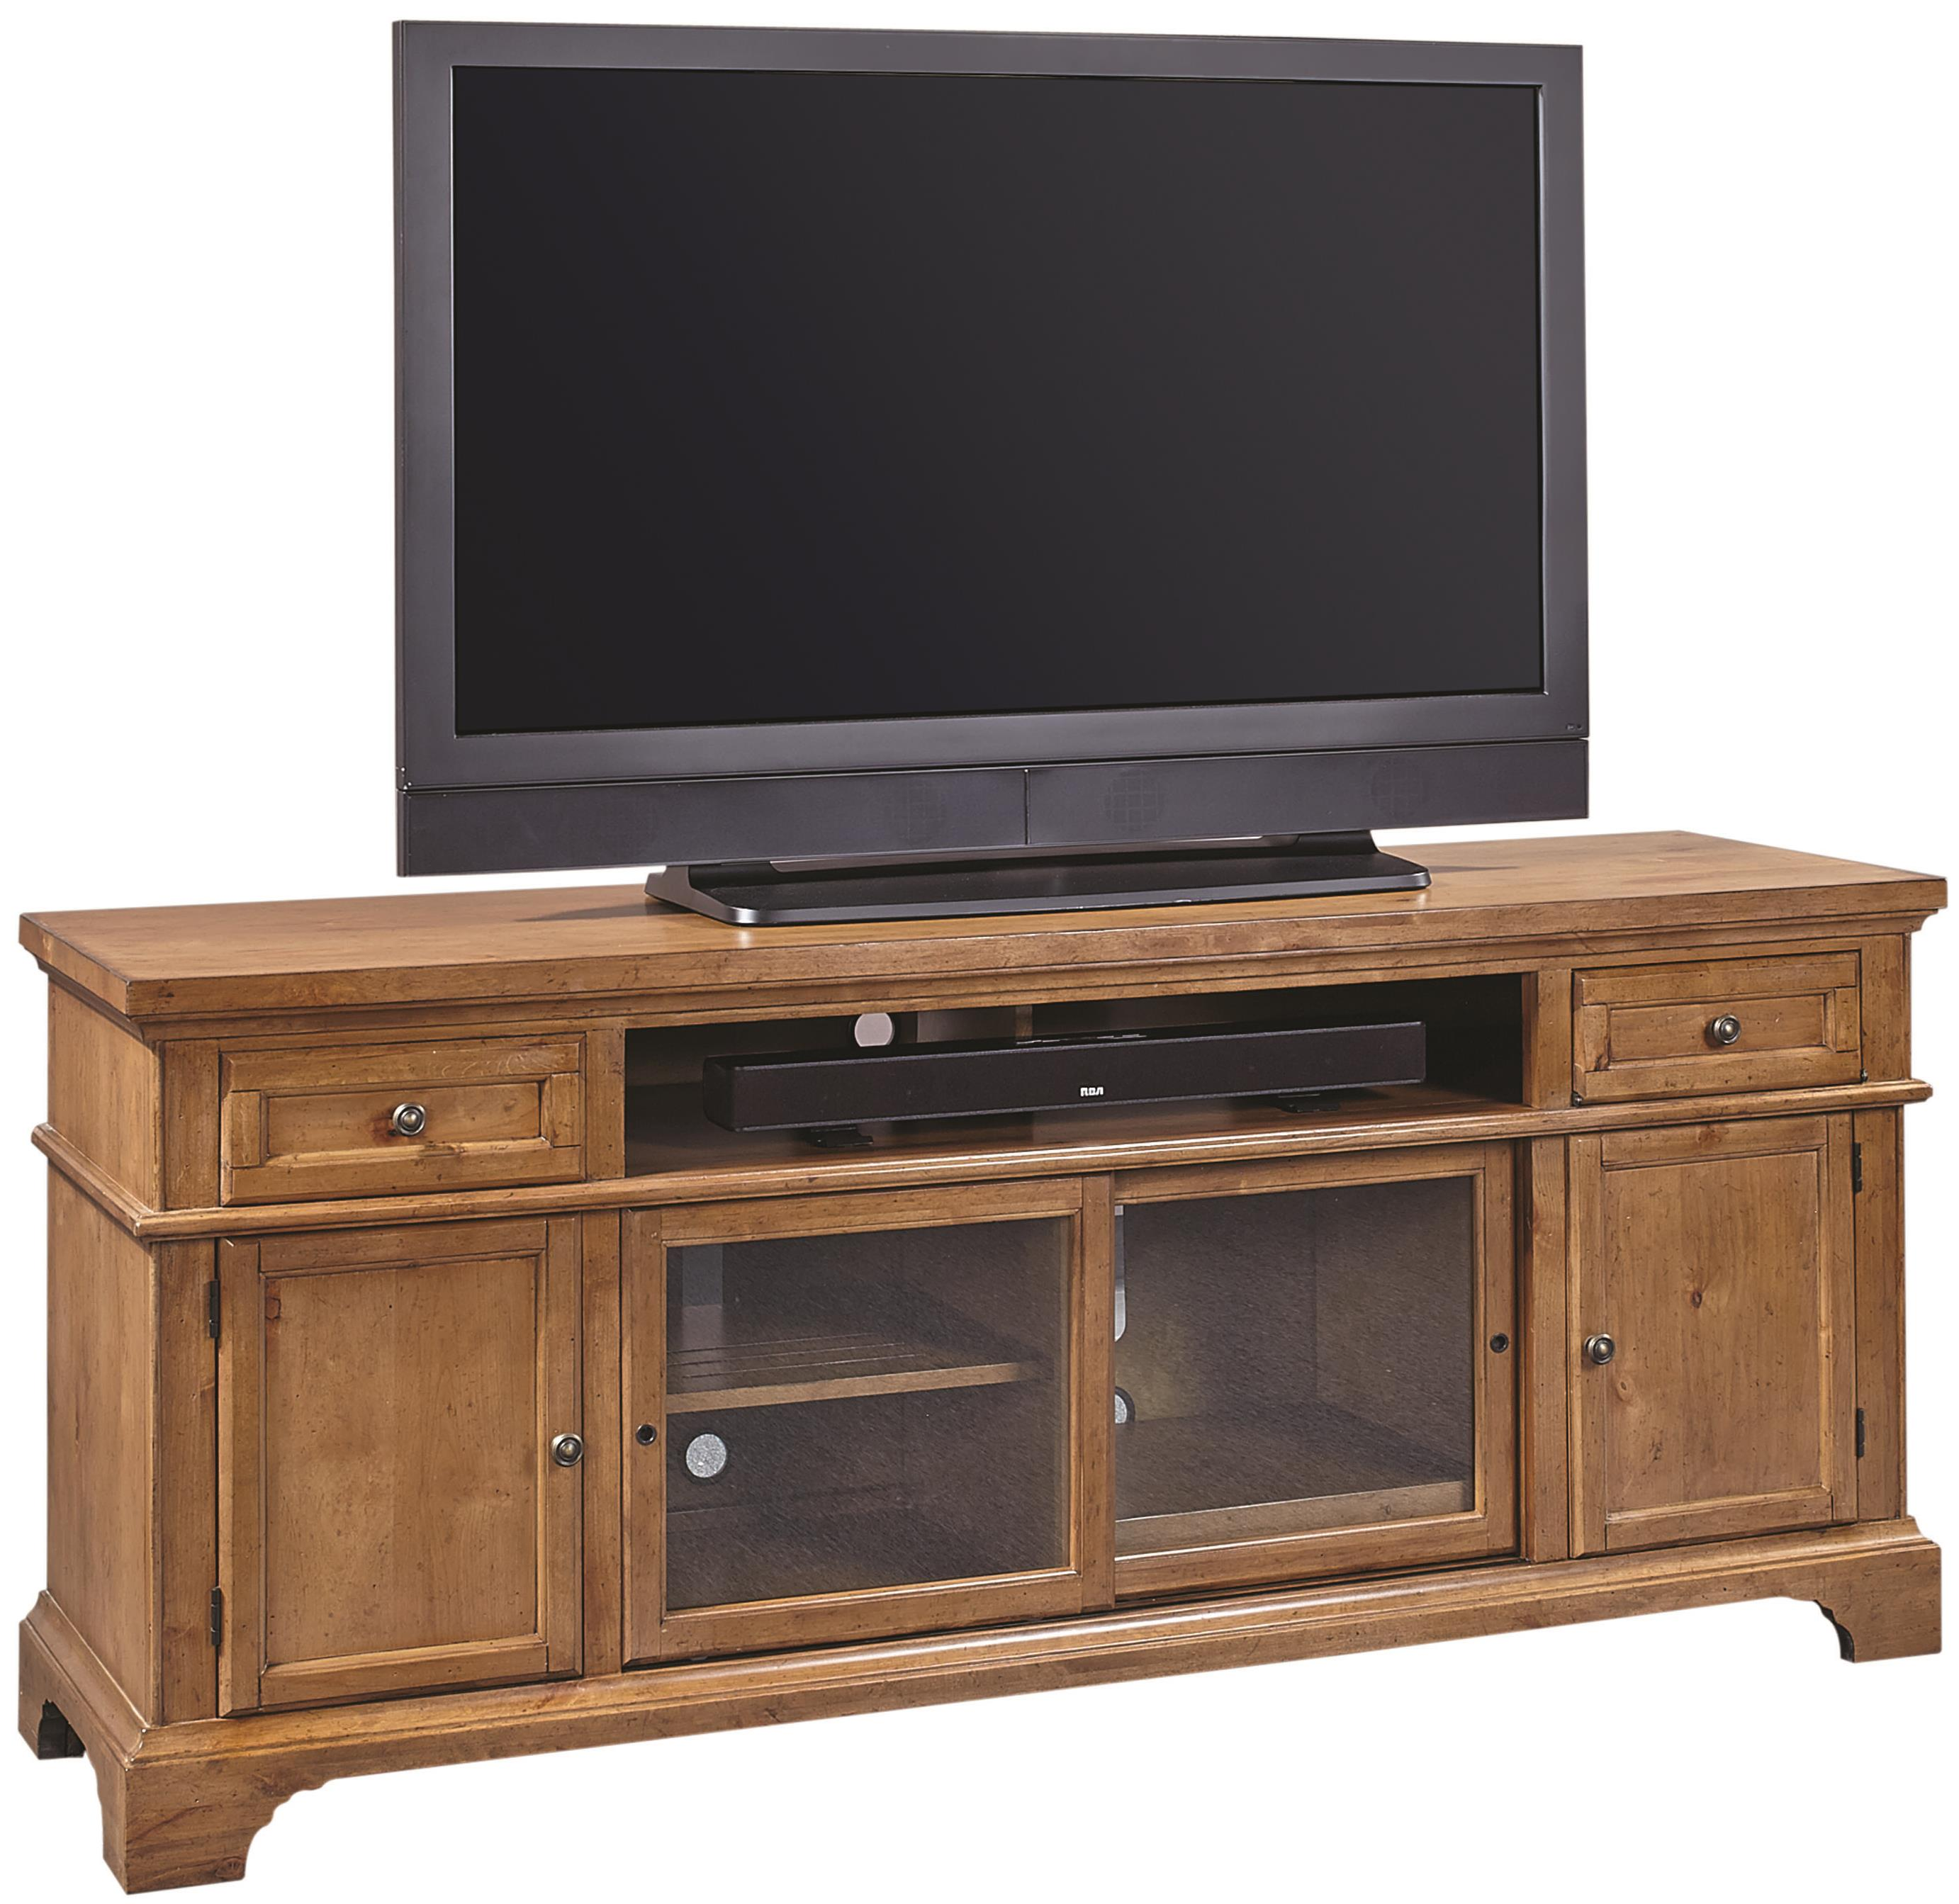 "Aspenhome Alder Creek 75"" Console  - Item Number: I09-272"